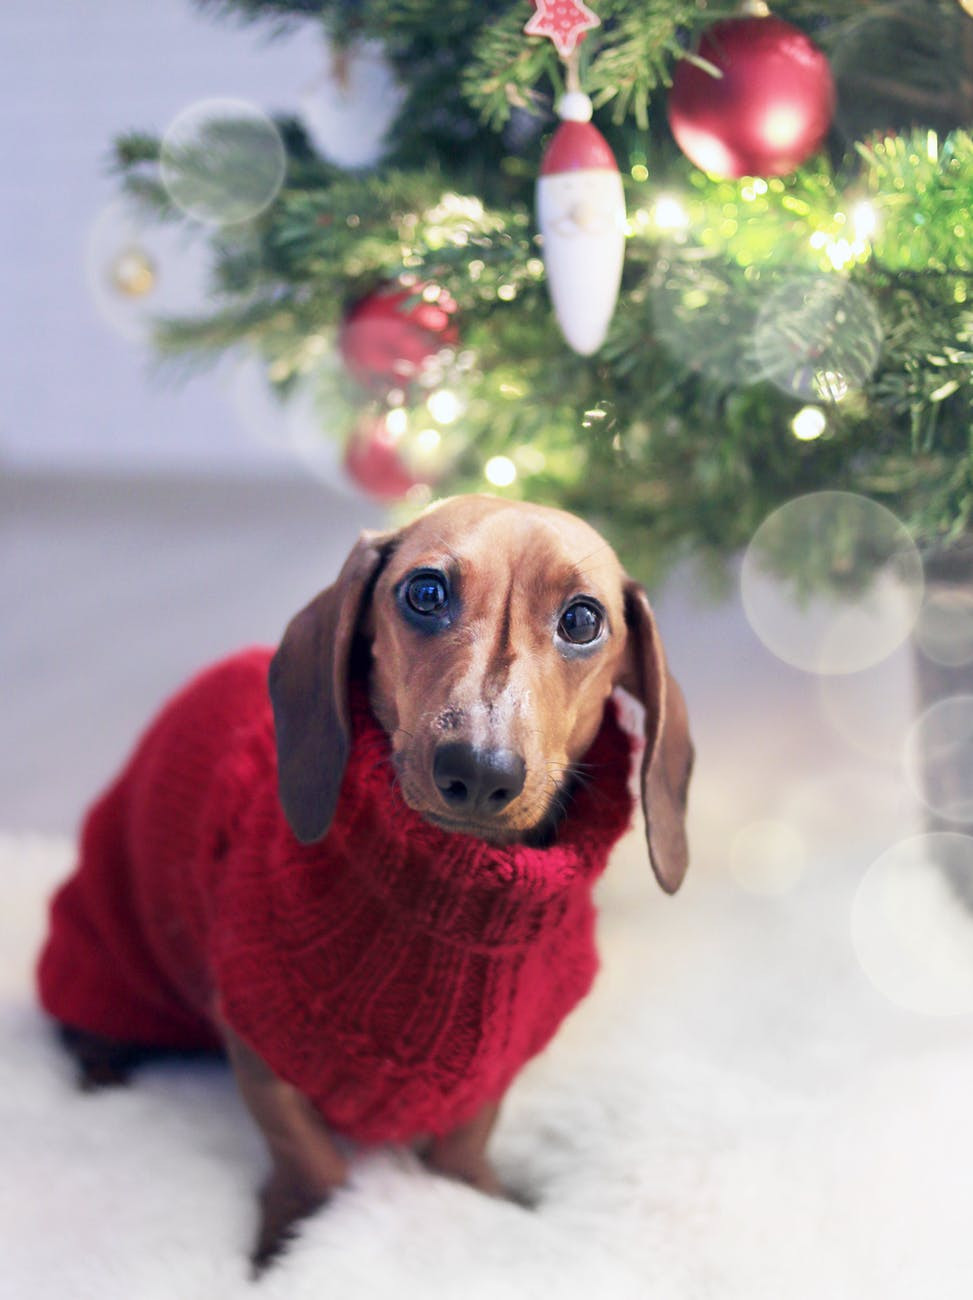 Cute sausage dog: Festive anxiety